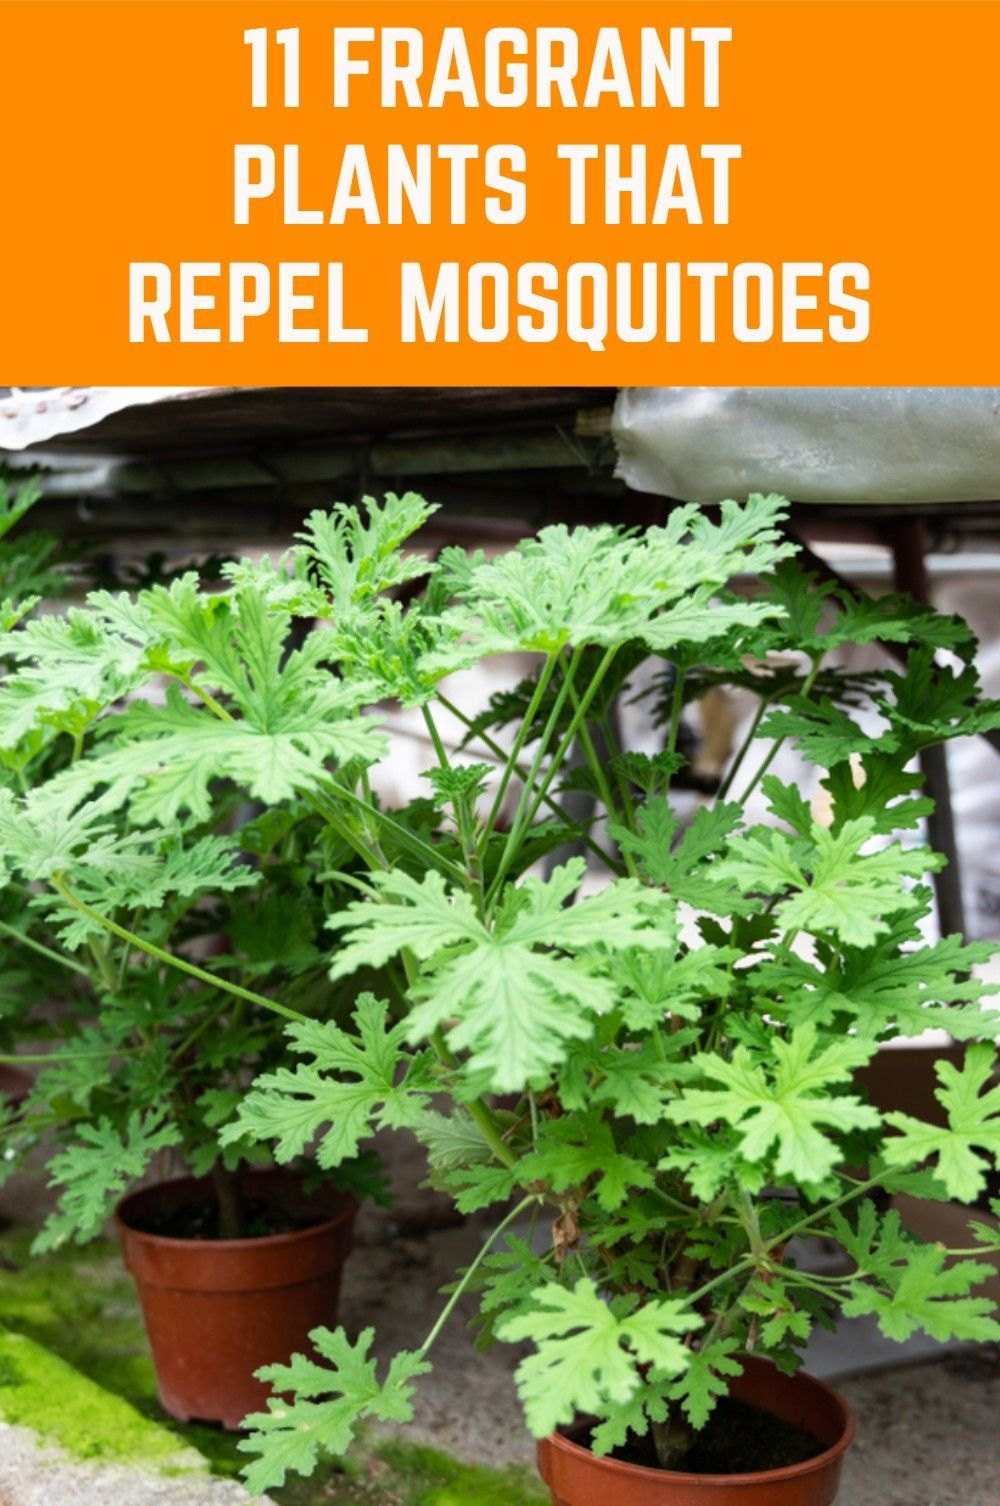 11 Fragrant Plants That Repel Mosquitoes